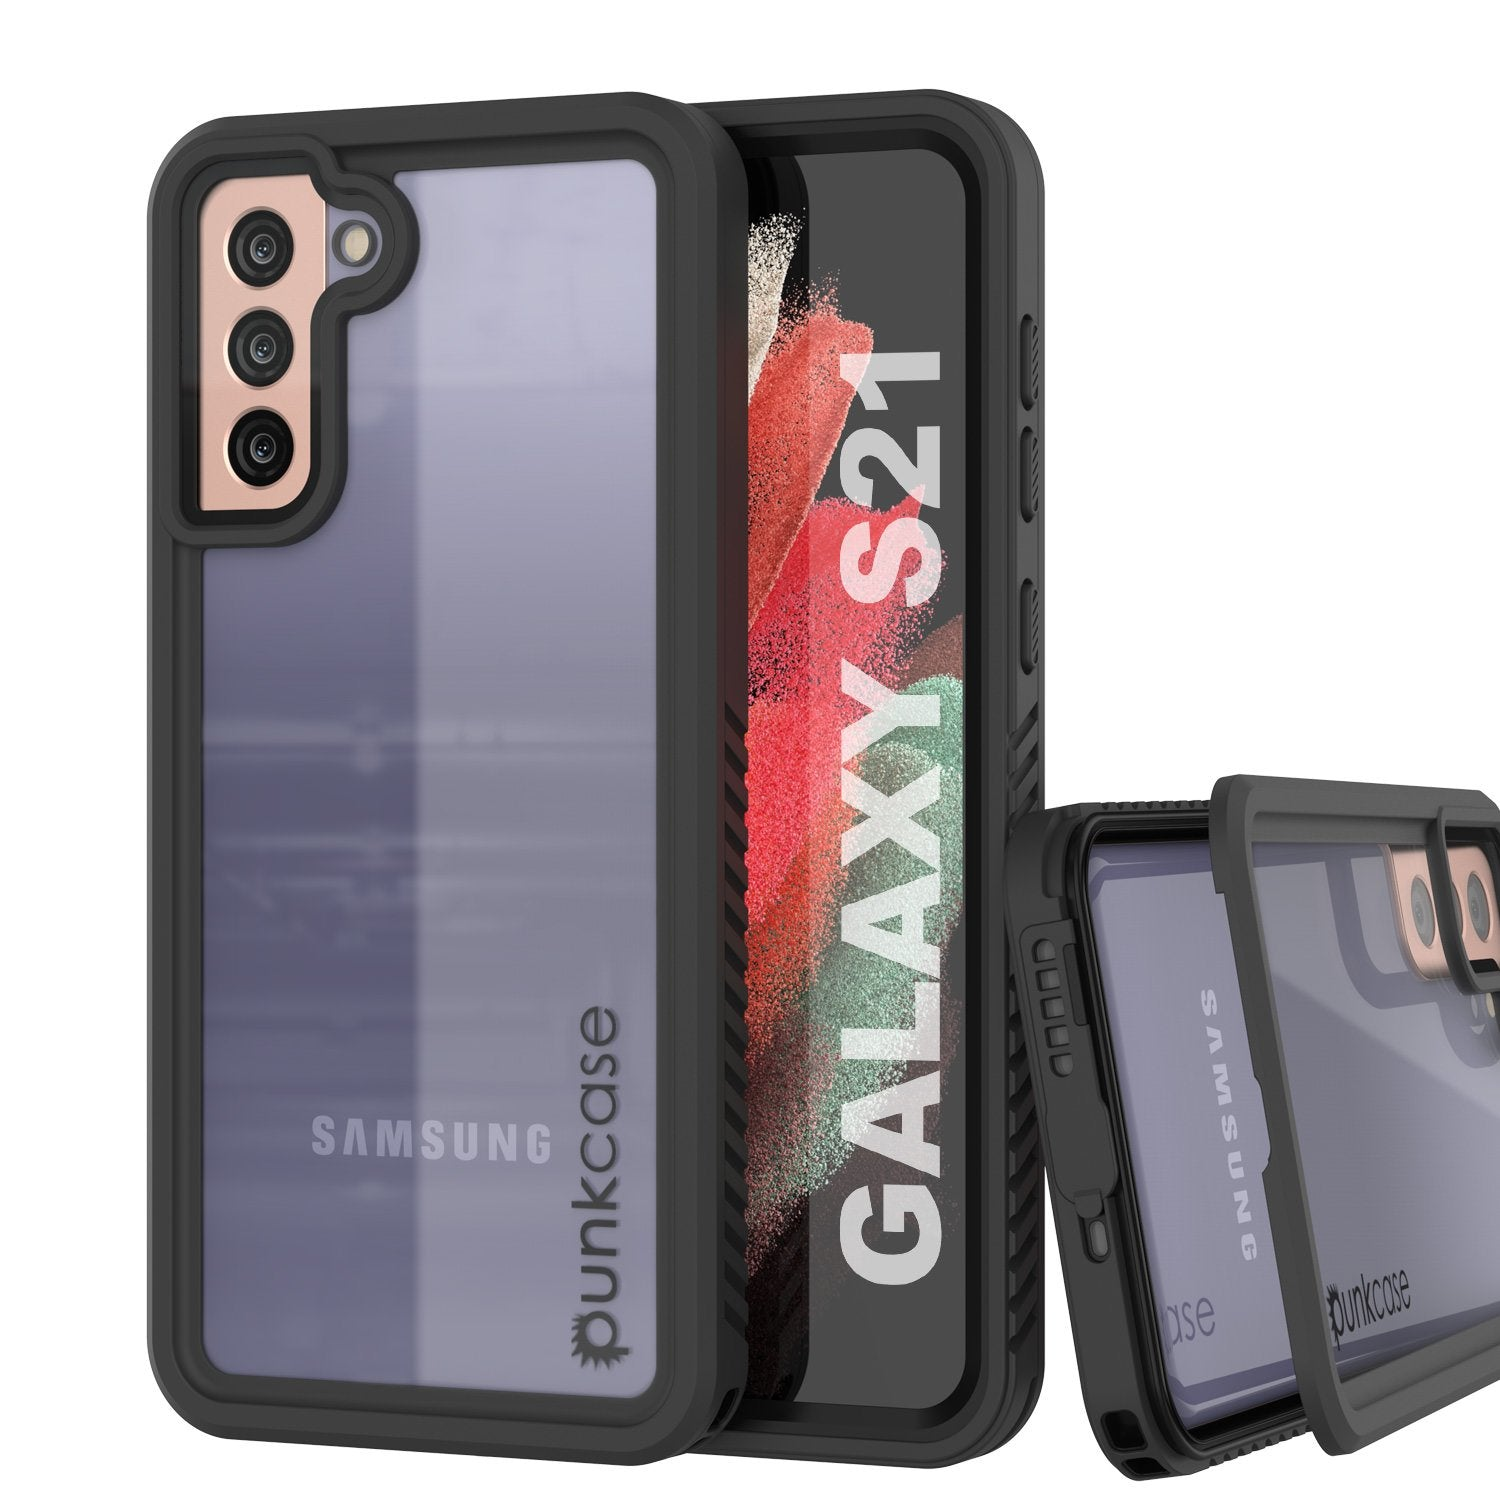 Galaxy S21 Water/Shockproof [Extreme Series] With Screen Protector Case [Black]